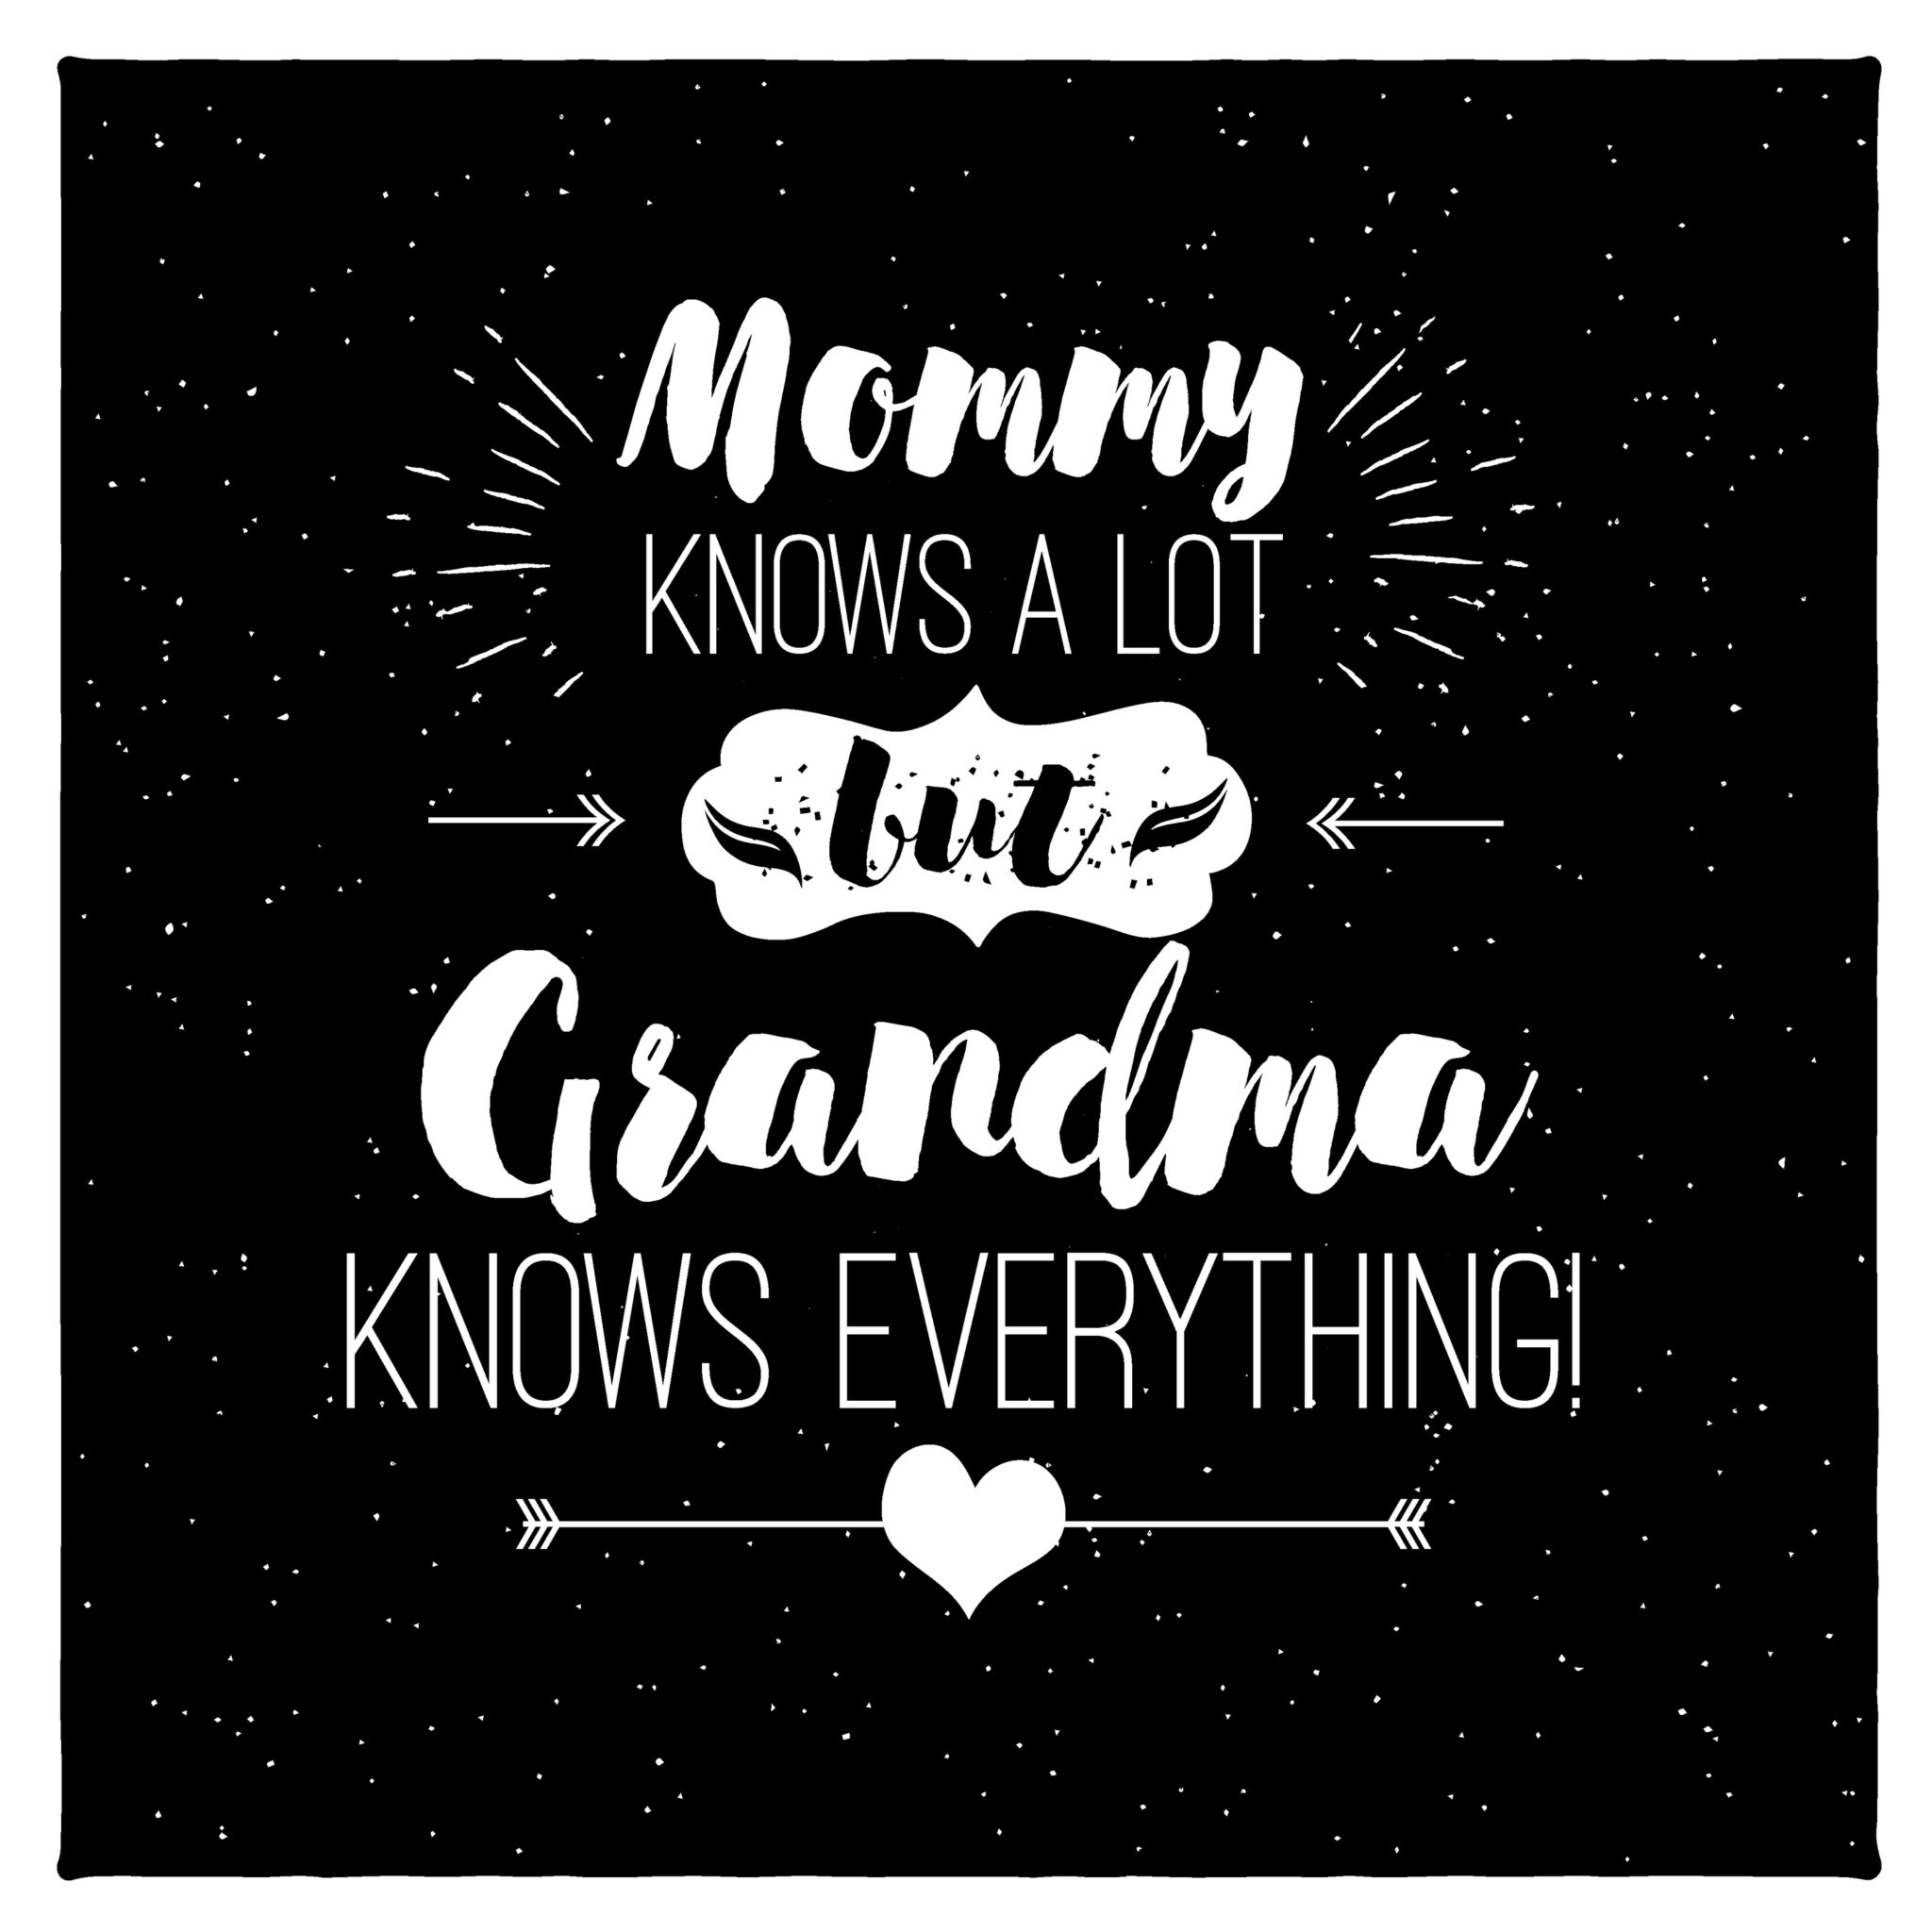 Mommy Knows a lot but Grandma knows everything